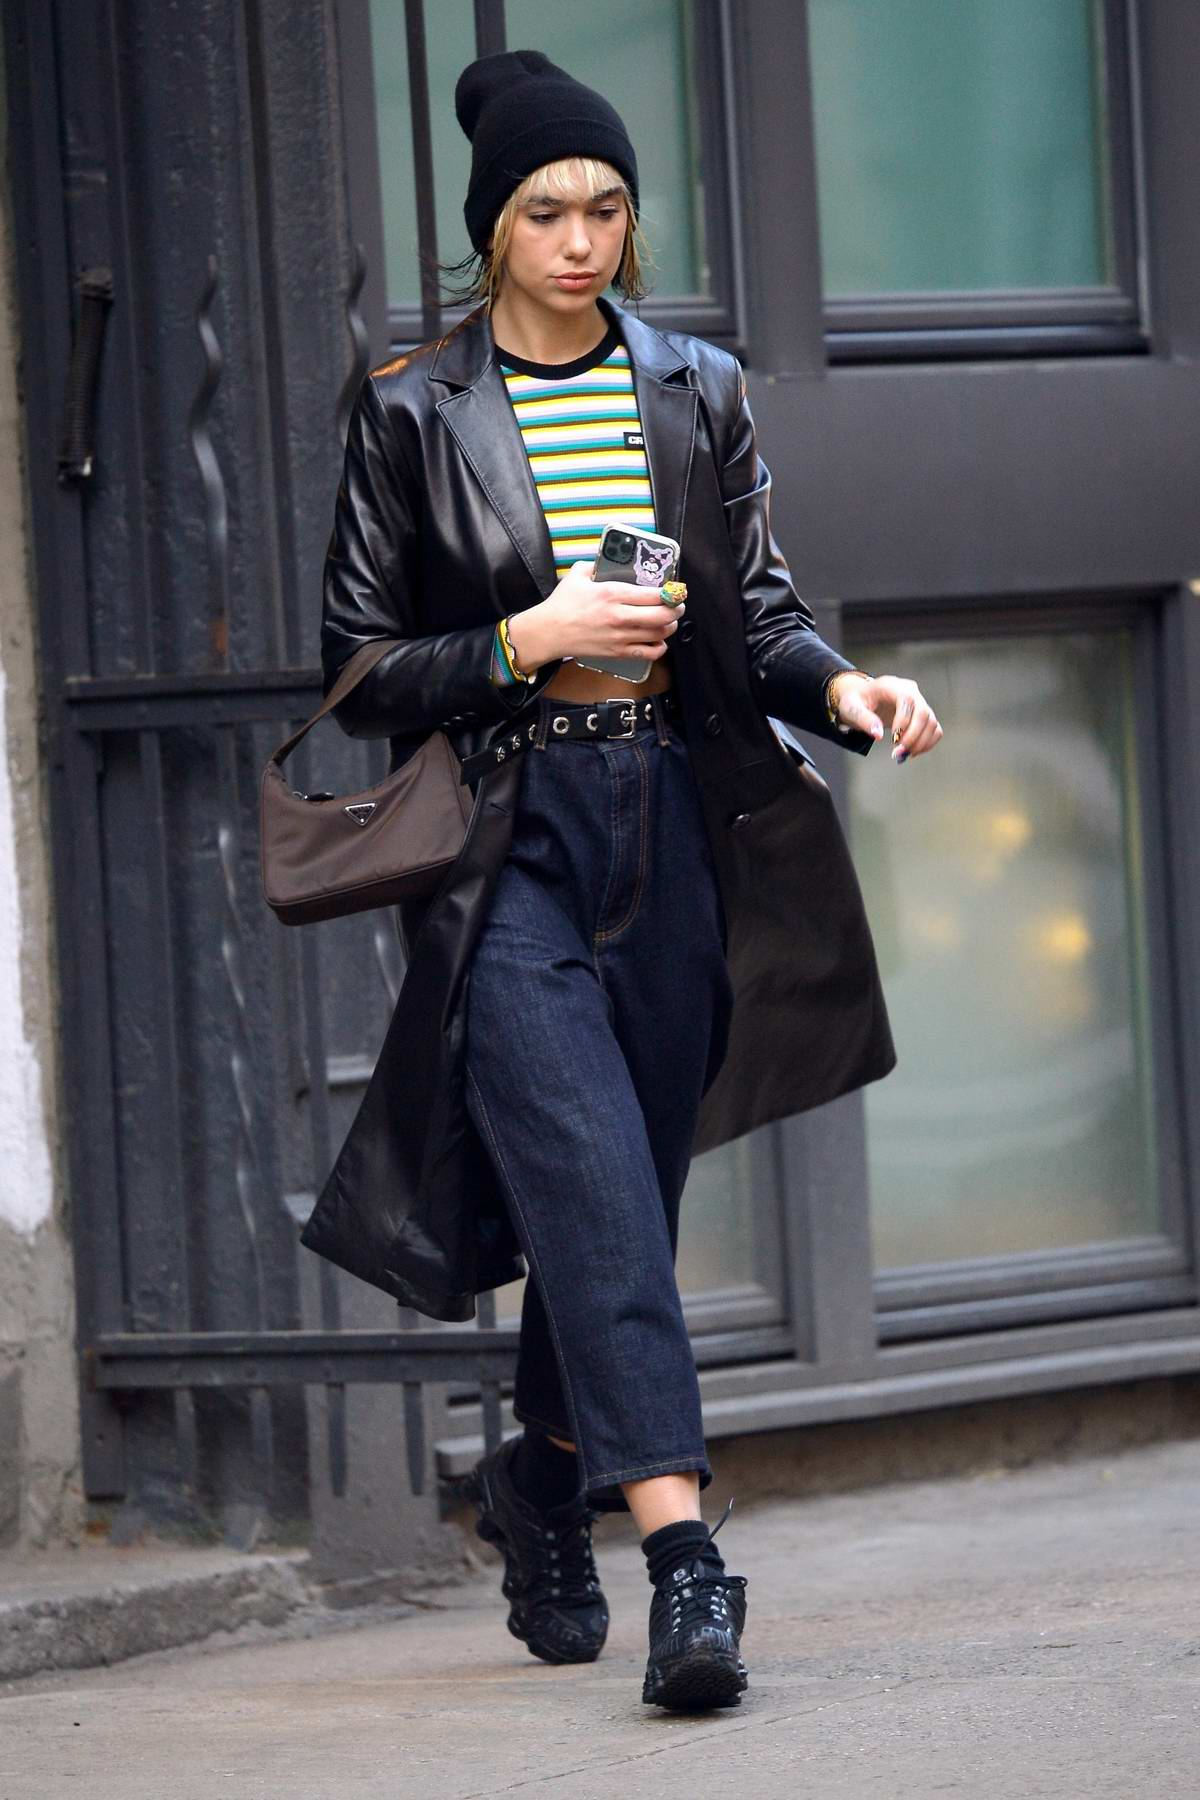 Dua Lipa shows off her cool street-style as she leaves her apartment in New York City